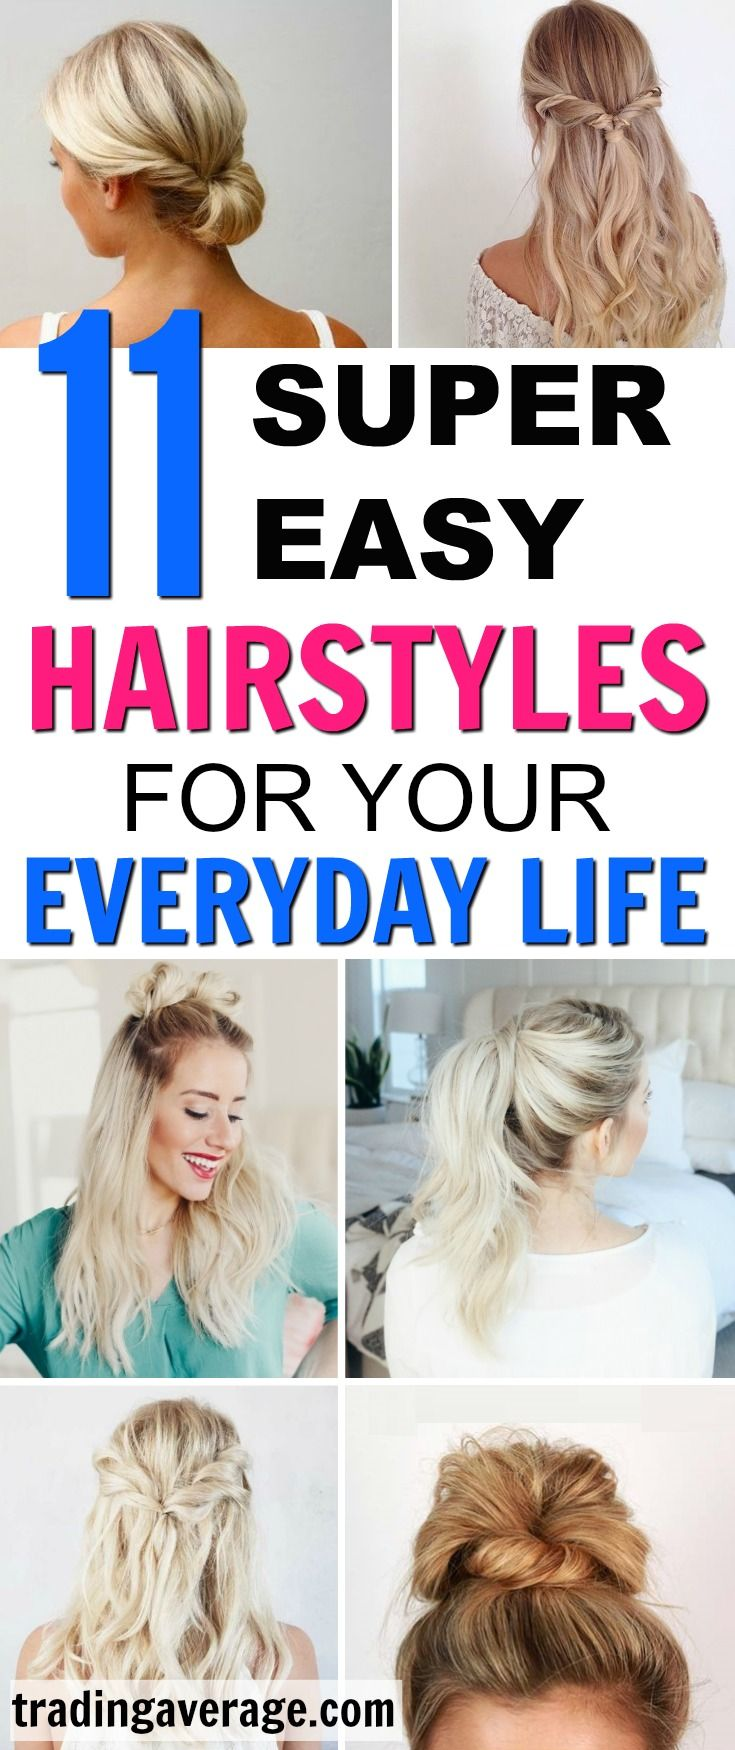 11 Super Easy Hairstyles for Everyday Life -   15 quick hairstyles ideas